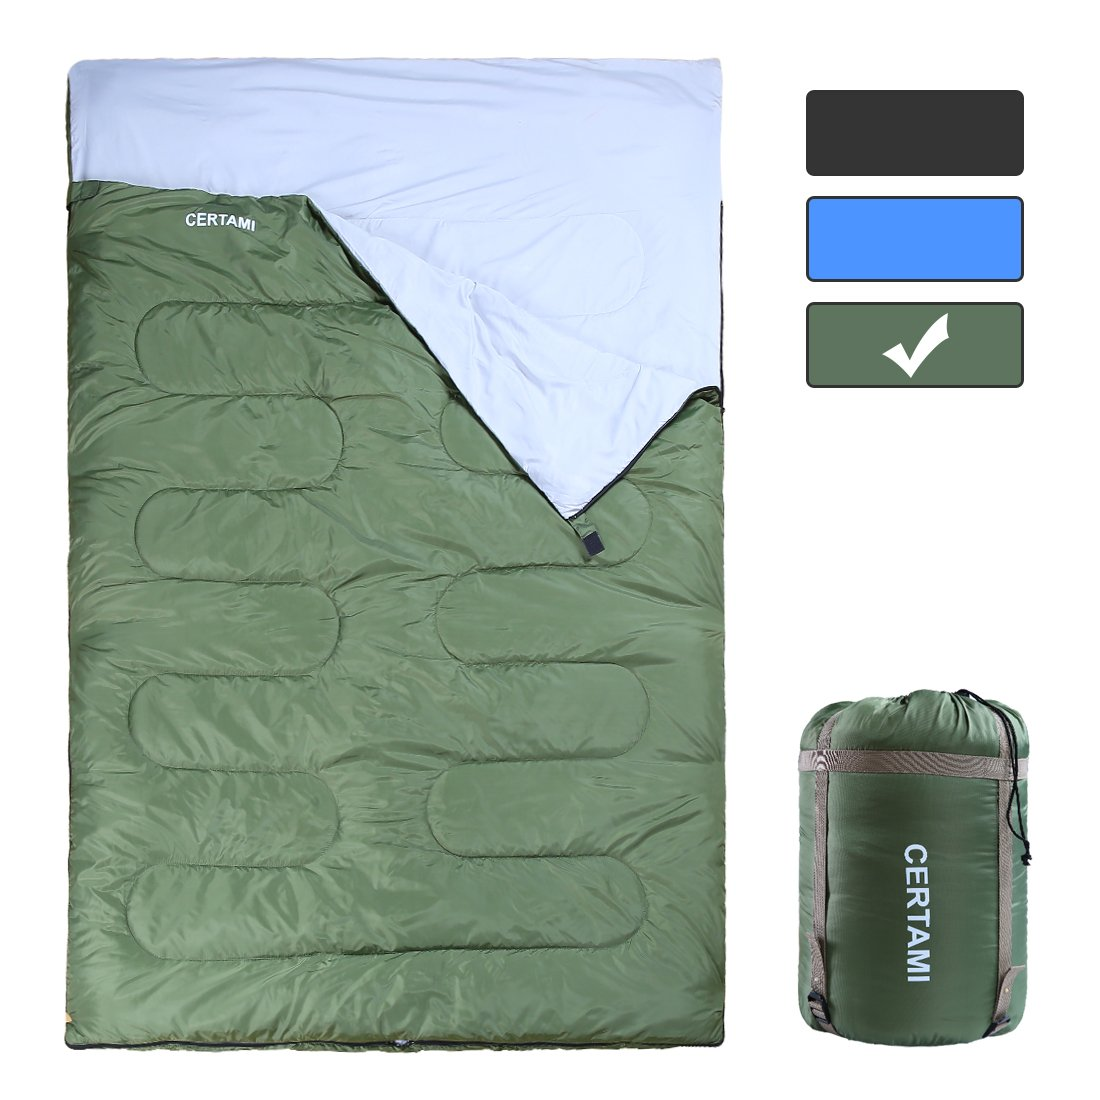 CER TAMI Sleeping Bag for Adults, Girls & Boys, Lightweight Waterproof Compact, Great for 4 Season Warm & Cold Weather, Perfect for Outdoor Backpacking, Camping, Hiking (Army Green/Double Zip) by CER TAMI